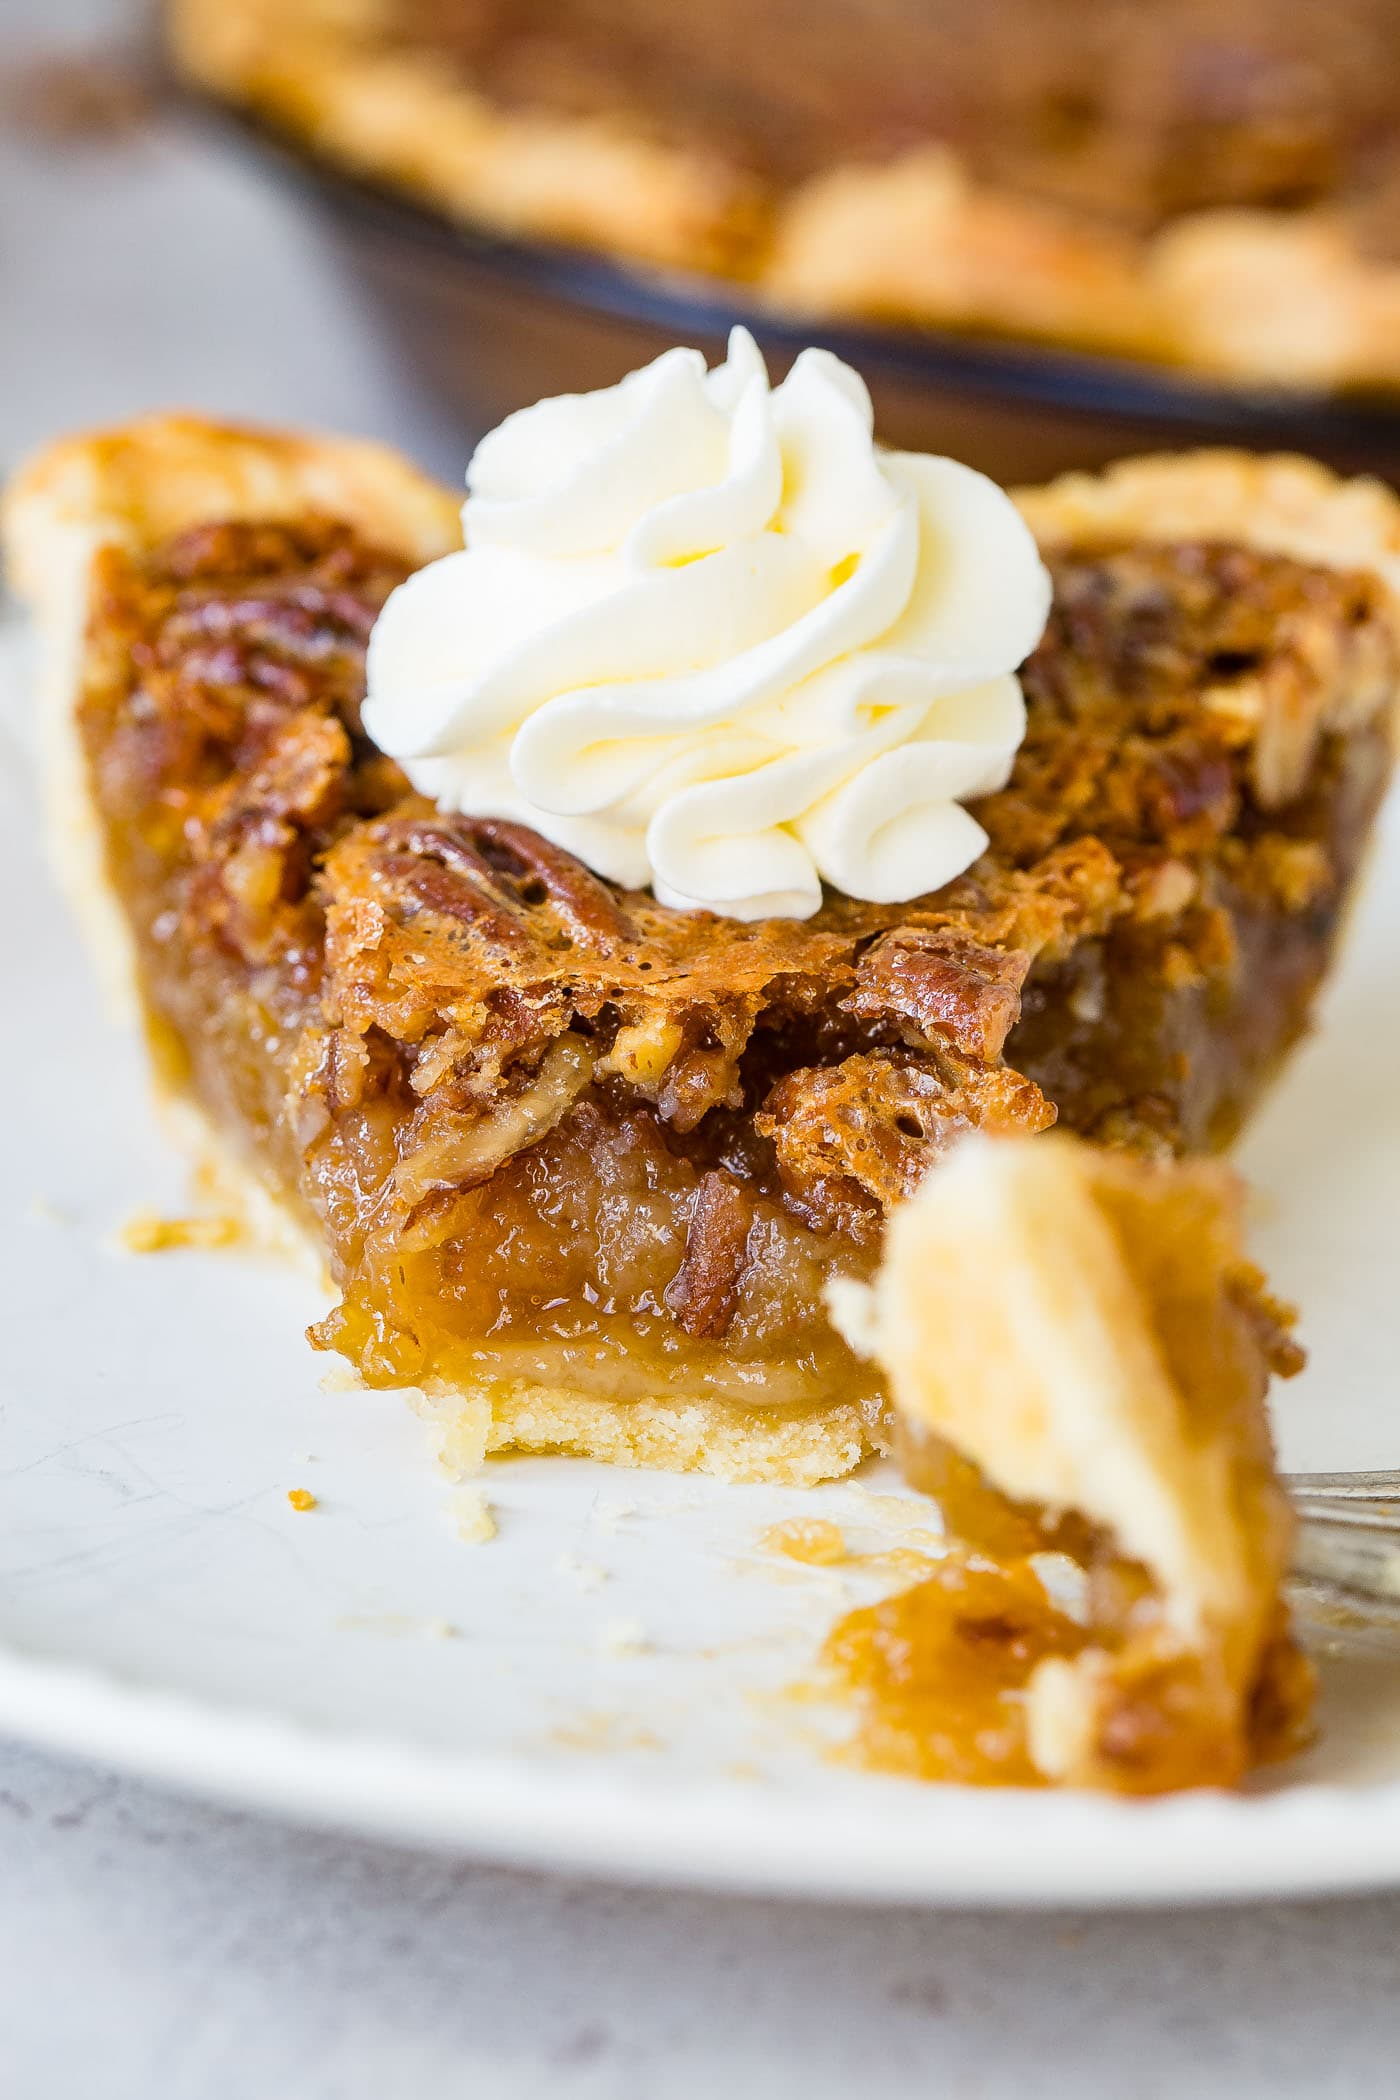 A photo of a slice of pecan pie with a bite taken out.